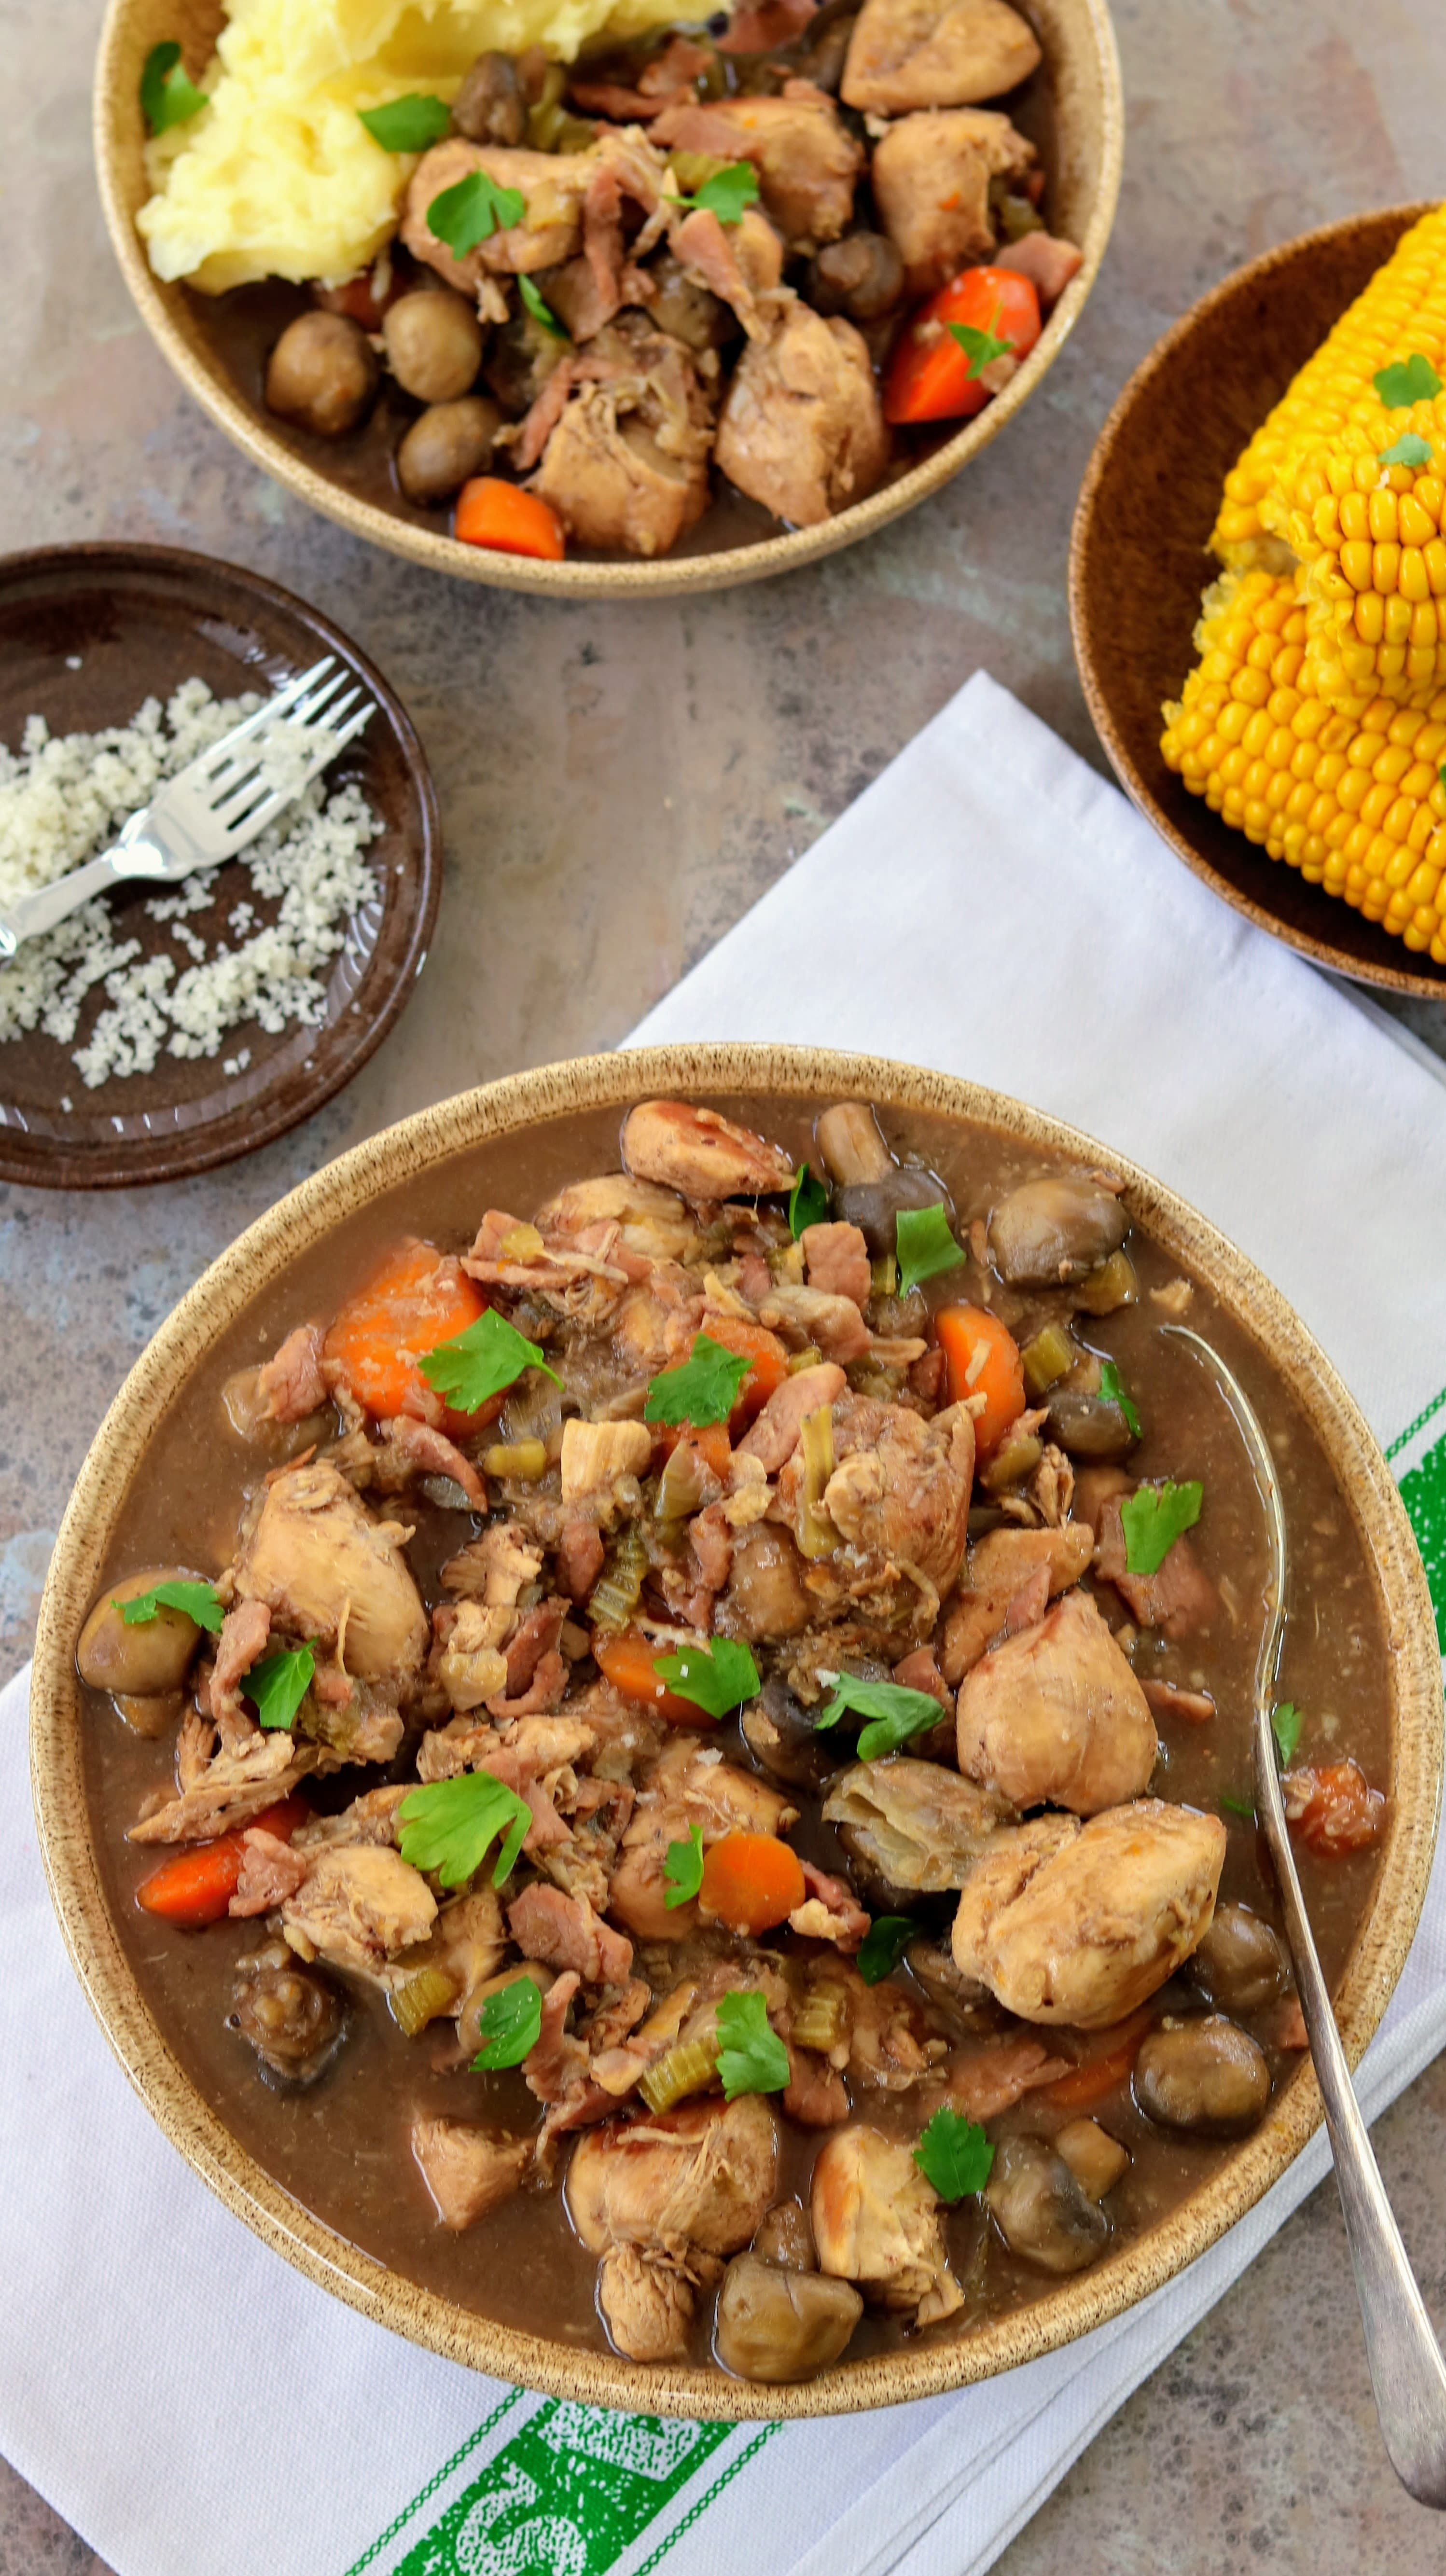 Slimming World Syn Free Coq Au Vin (Chicken in Red Wine)